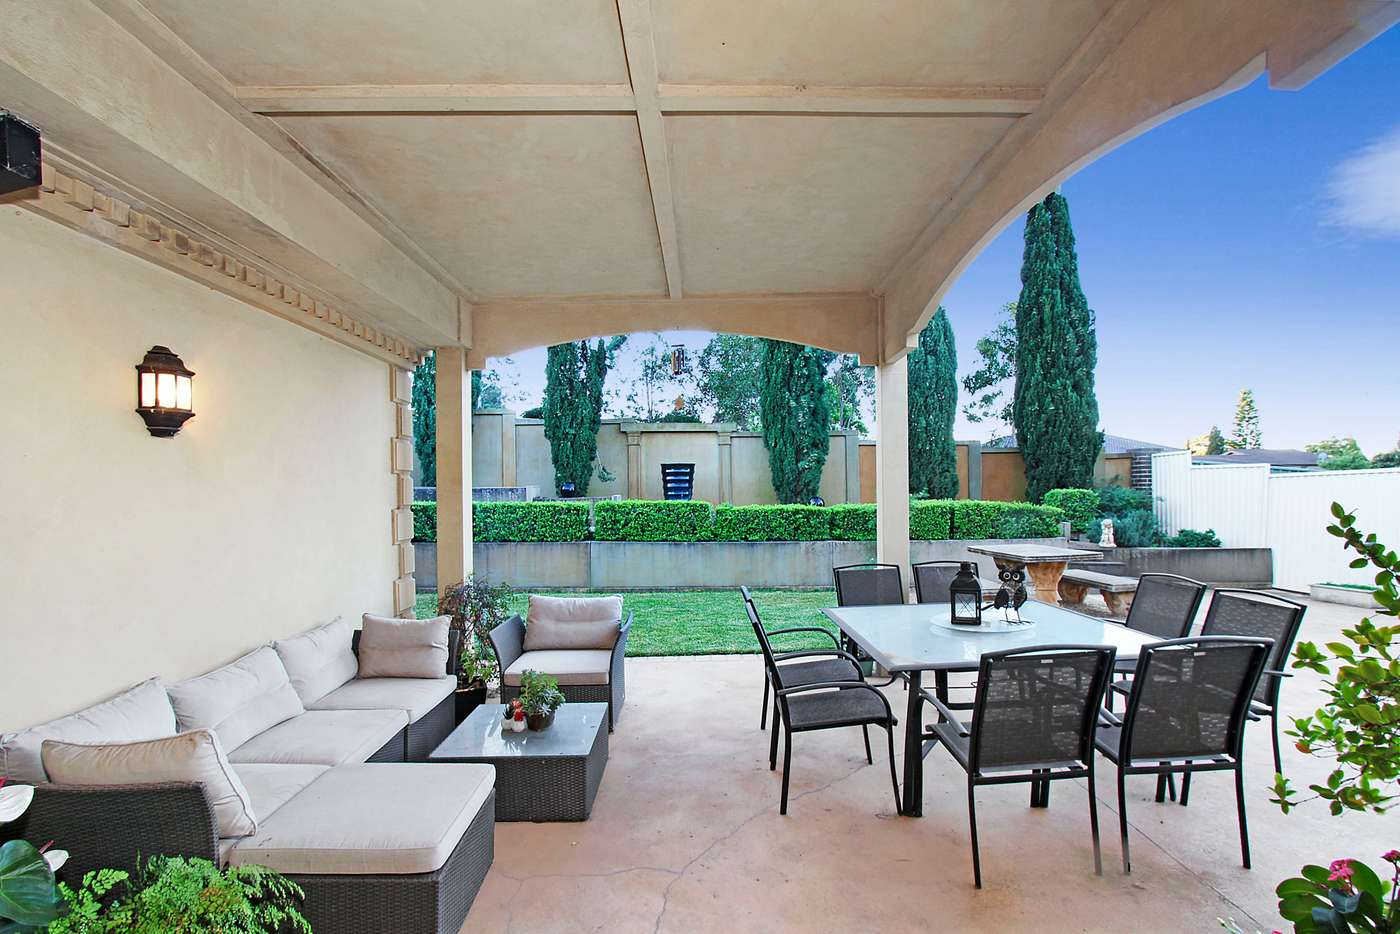 Sixth view of Homely house listing, 51 Hackett Road, Abbotsbury NSW 2176